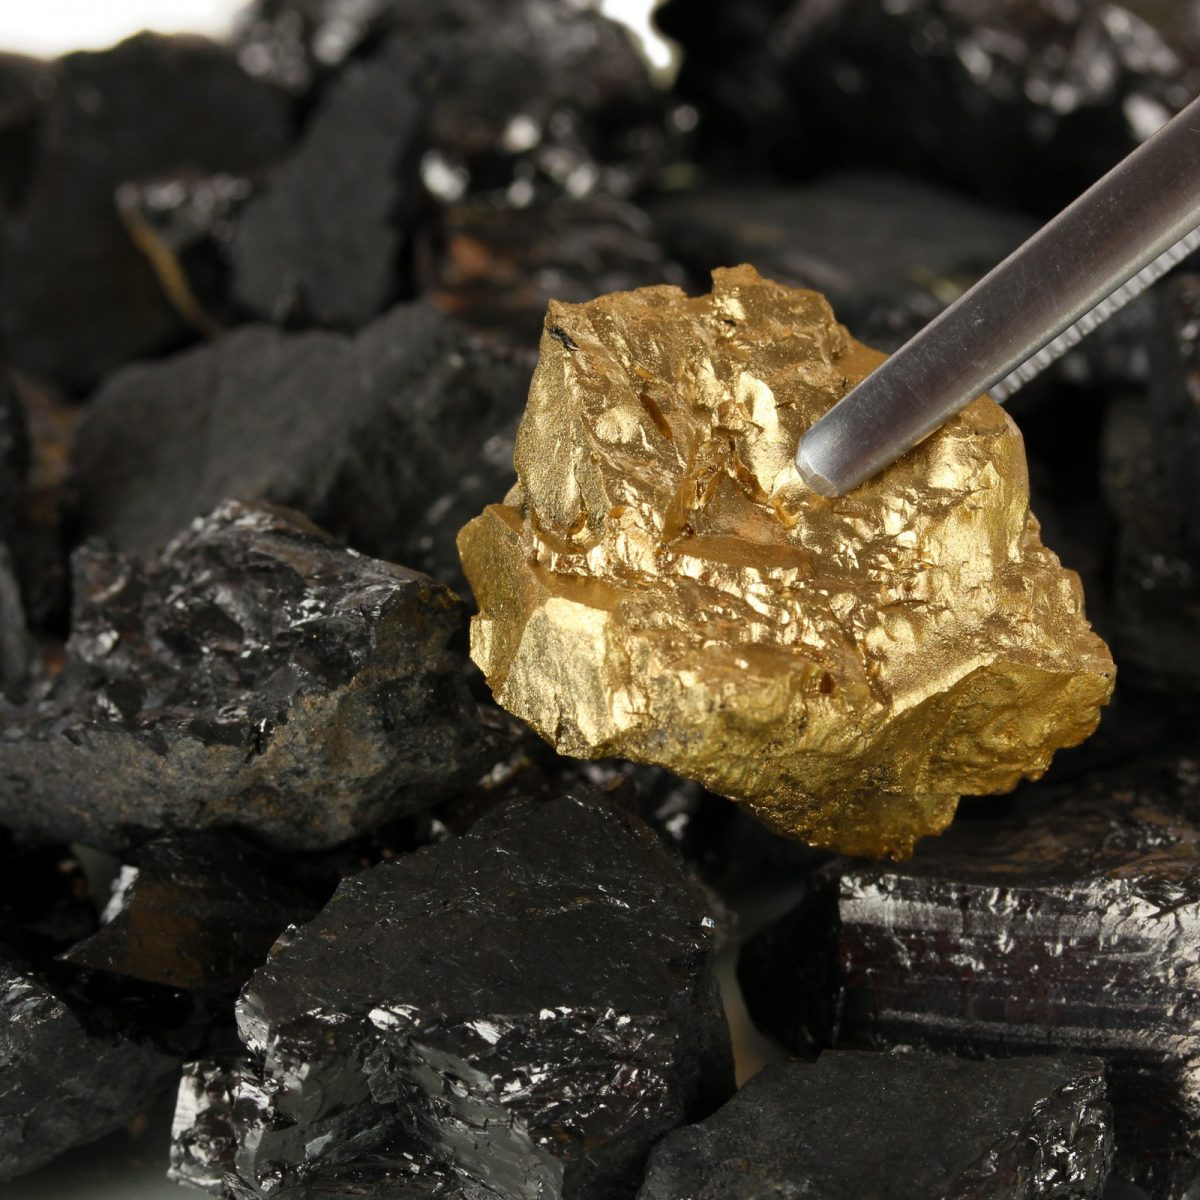 Gold Mining Company's Shares Jump 1,300% After Switch to Bitcoin – Bitcoin News